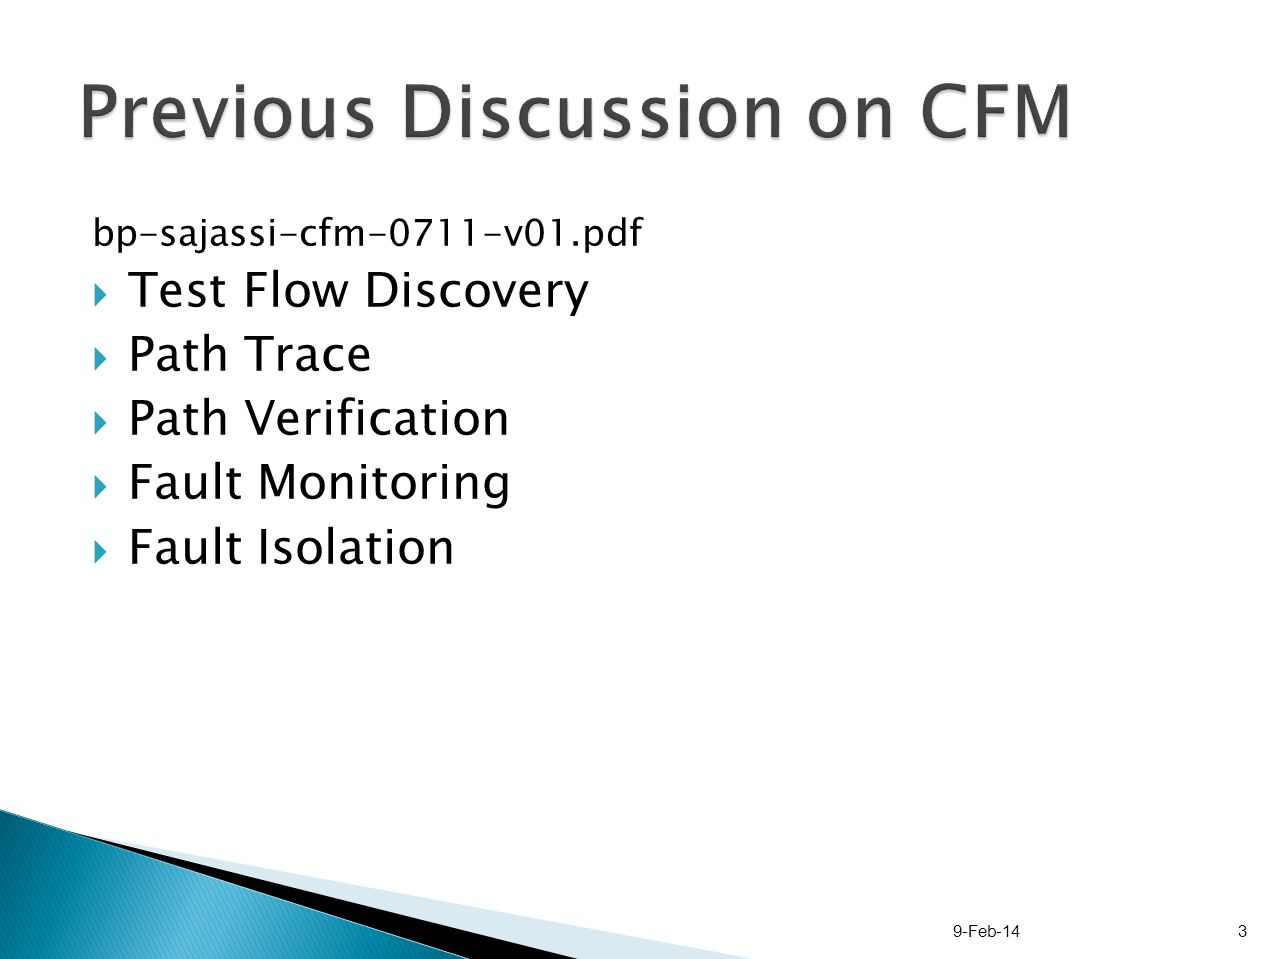 bp-sajassi-cfm-0711-v01.pdf Test Flow Discovery Path Trace Path Verification Fault Monitoring Fault Isolation 9-Feb-143